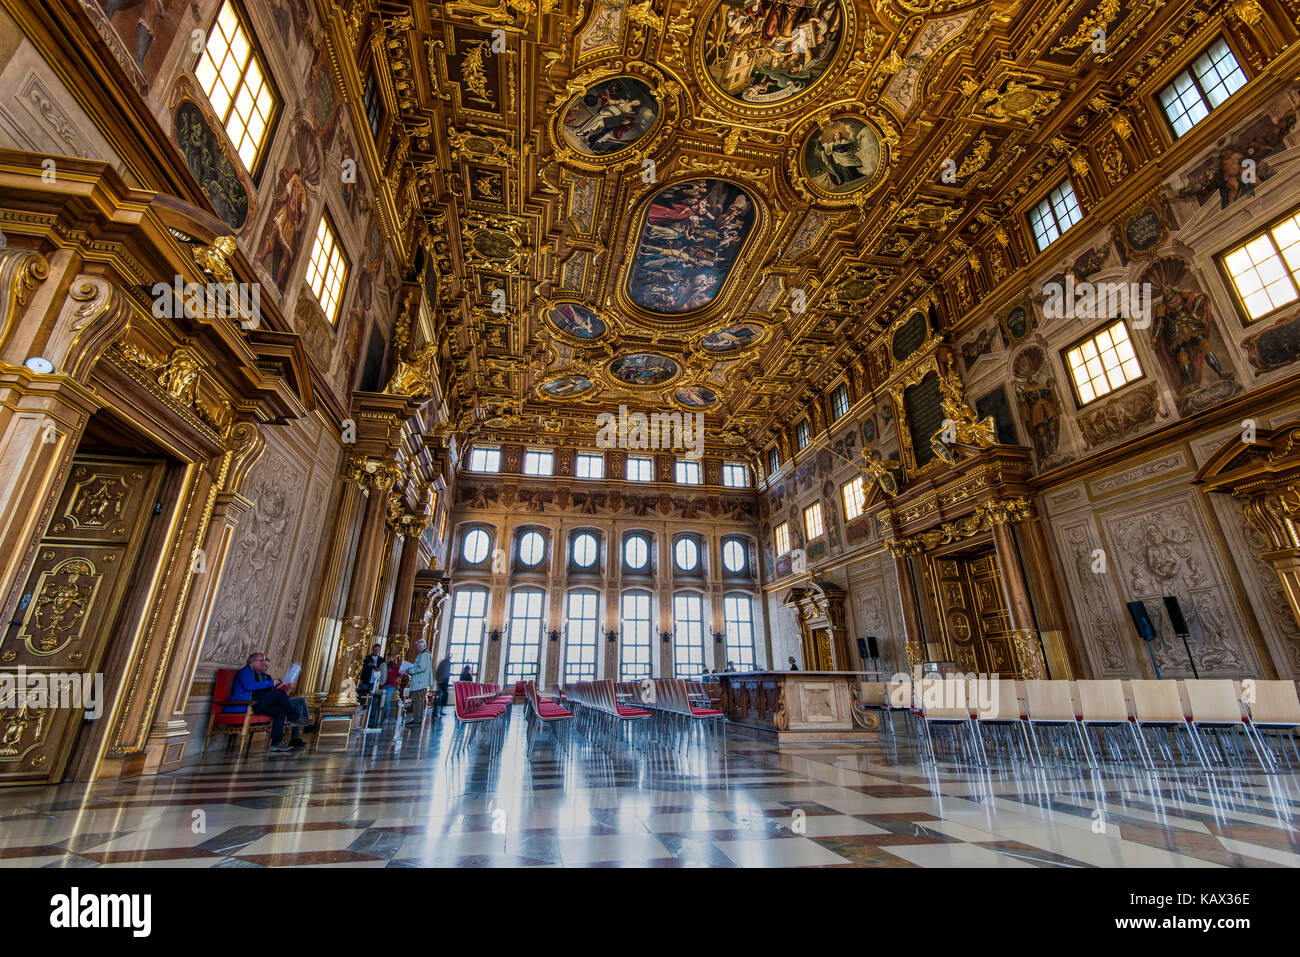 Goldener Saal or Golden hall, Rathaus or City Hall, Augsburg, Bavaria, Germany - Stock Image